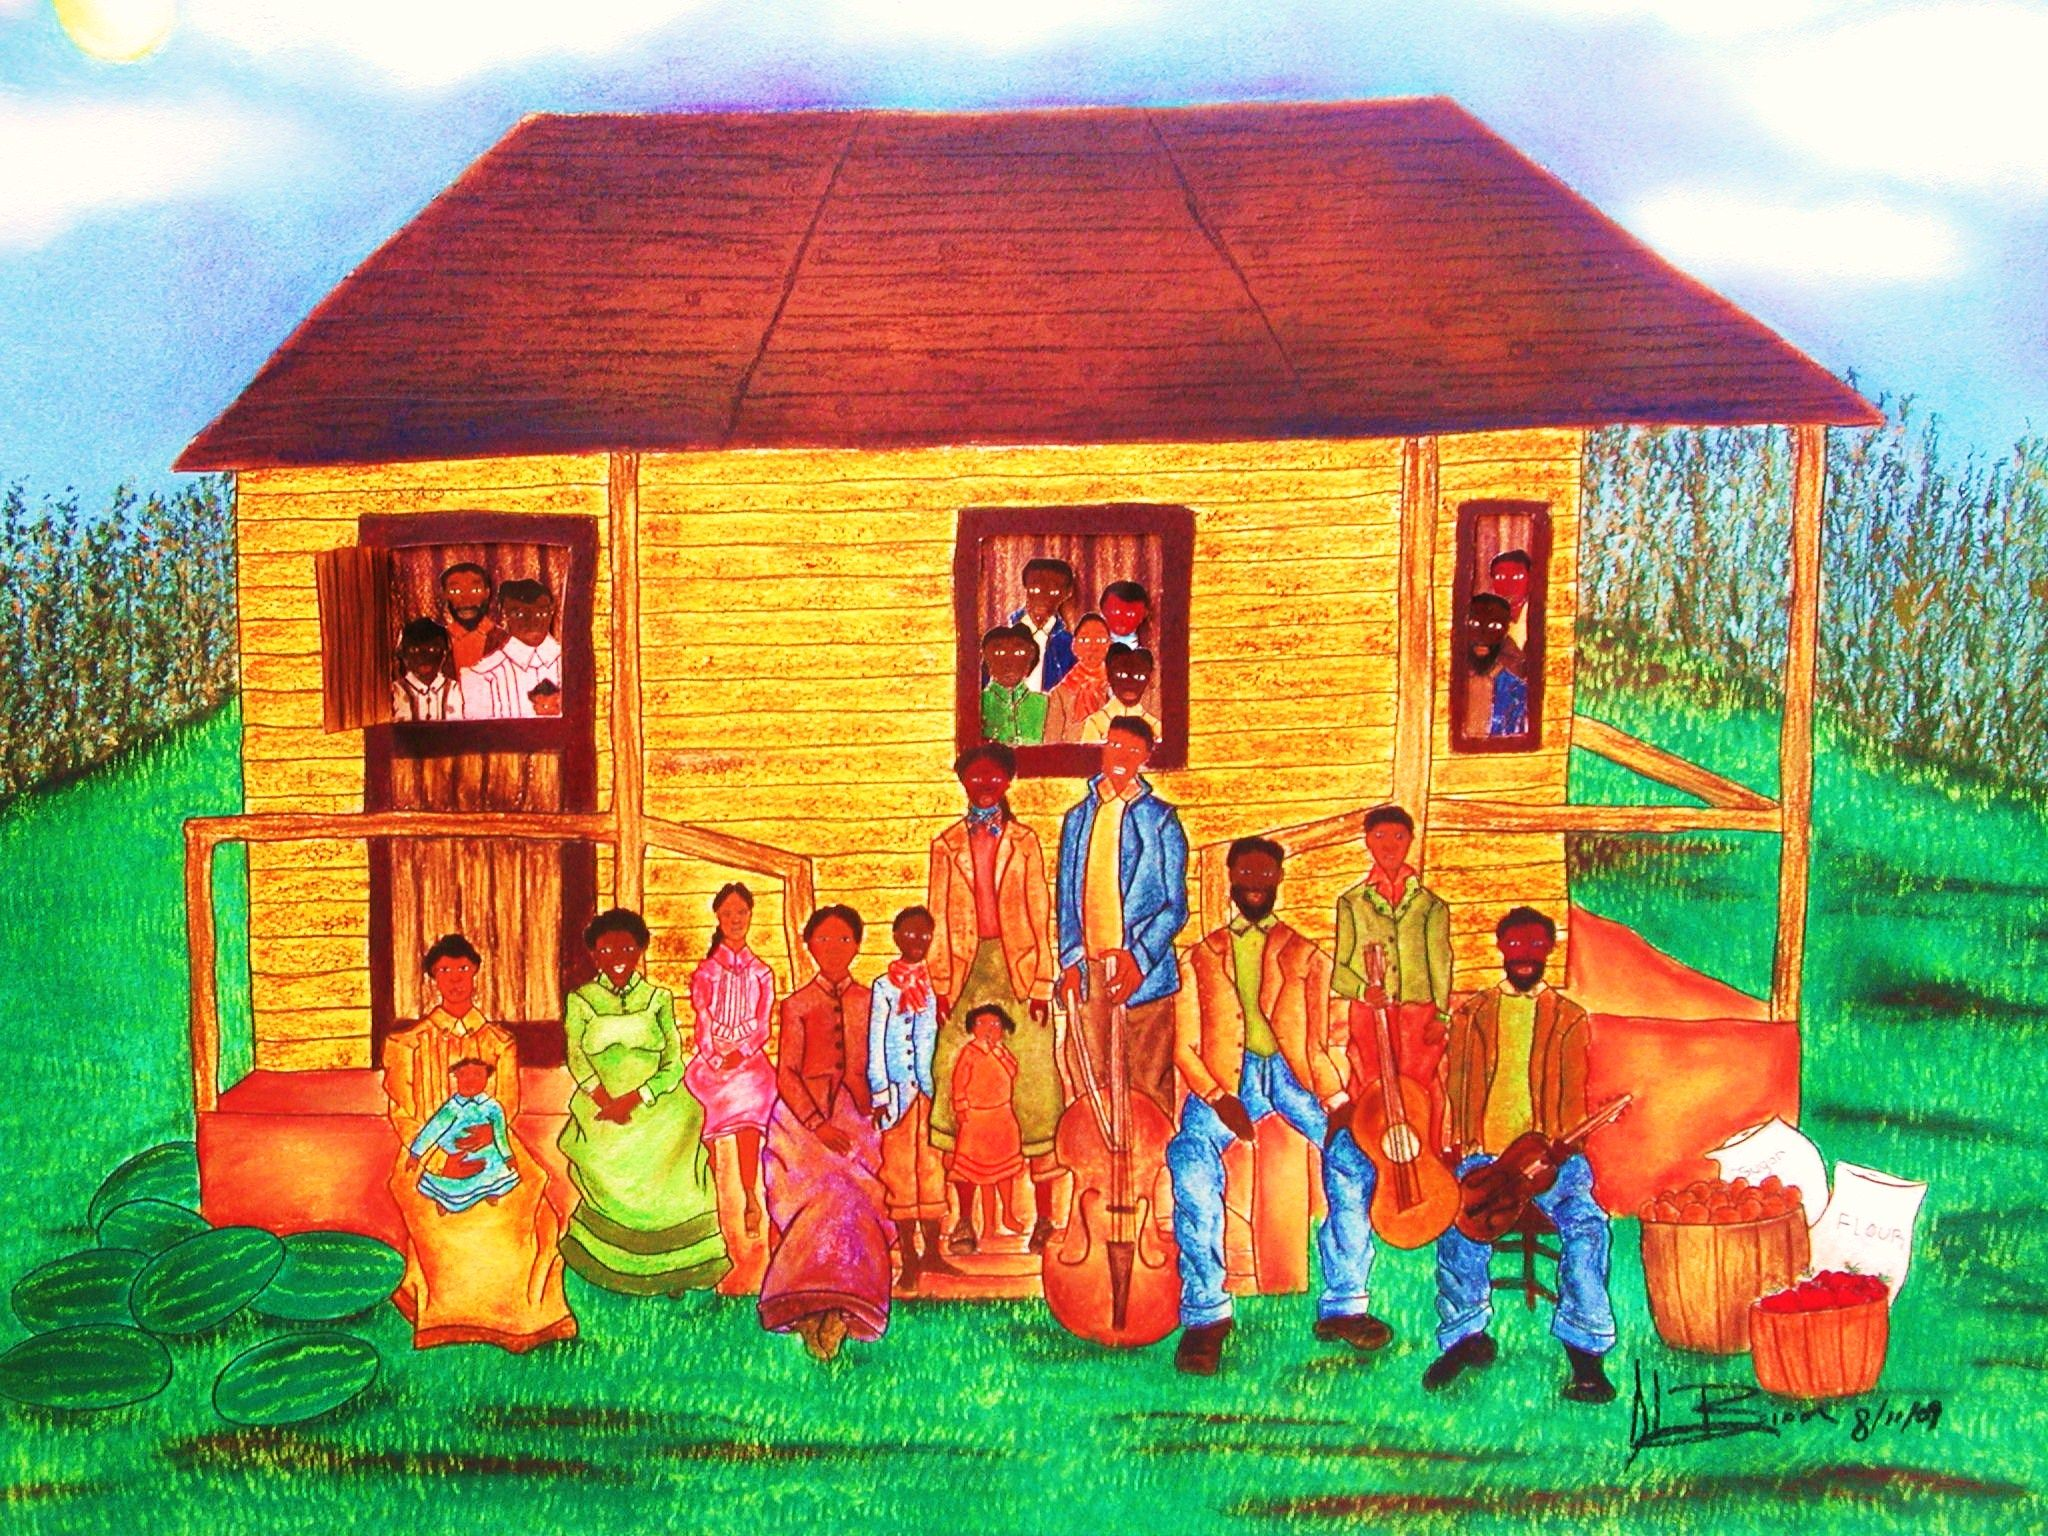 Family reunion cookout clipart image royalty free library Idea Reunion African American Family Art | ... touch with her there ... image royalty free library